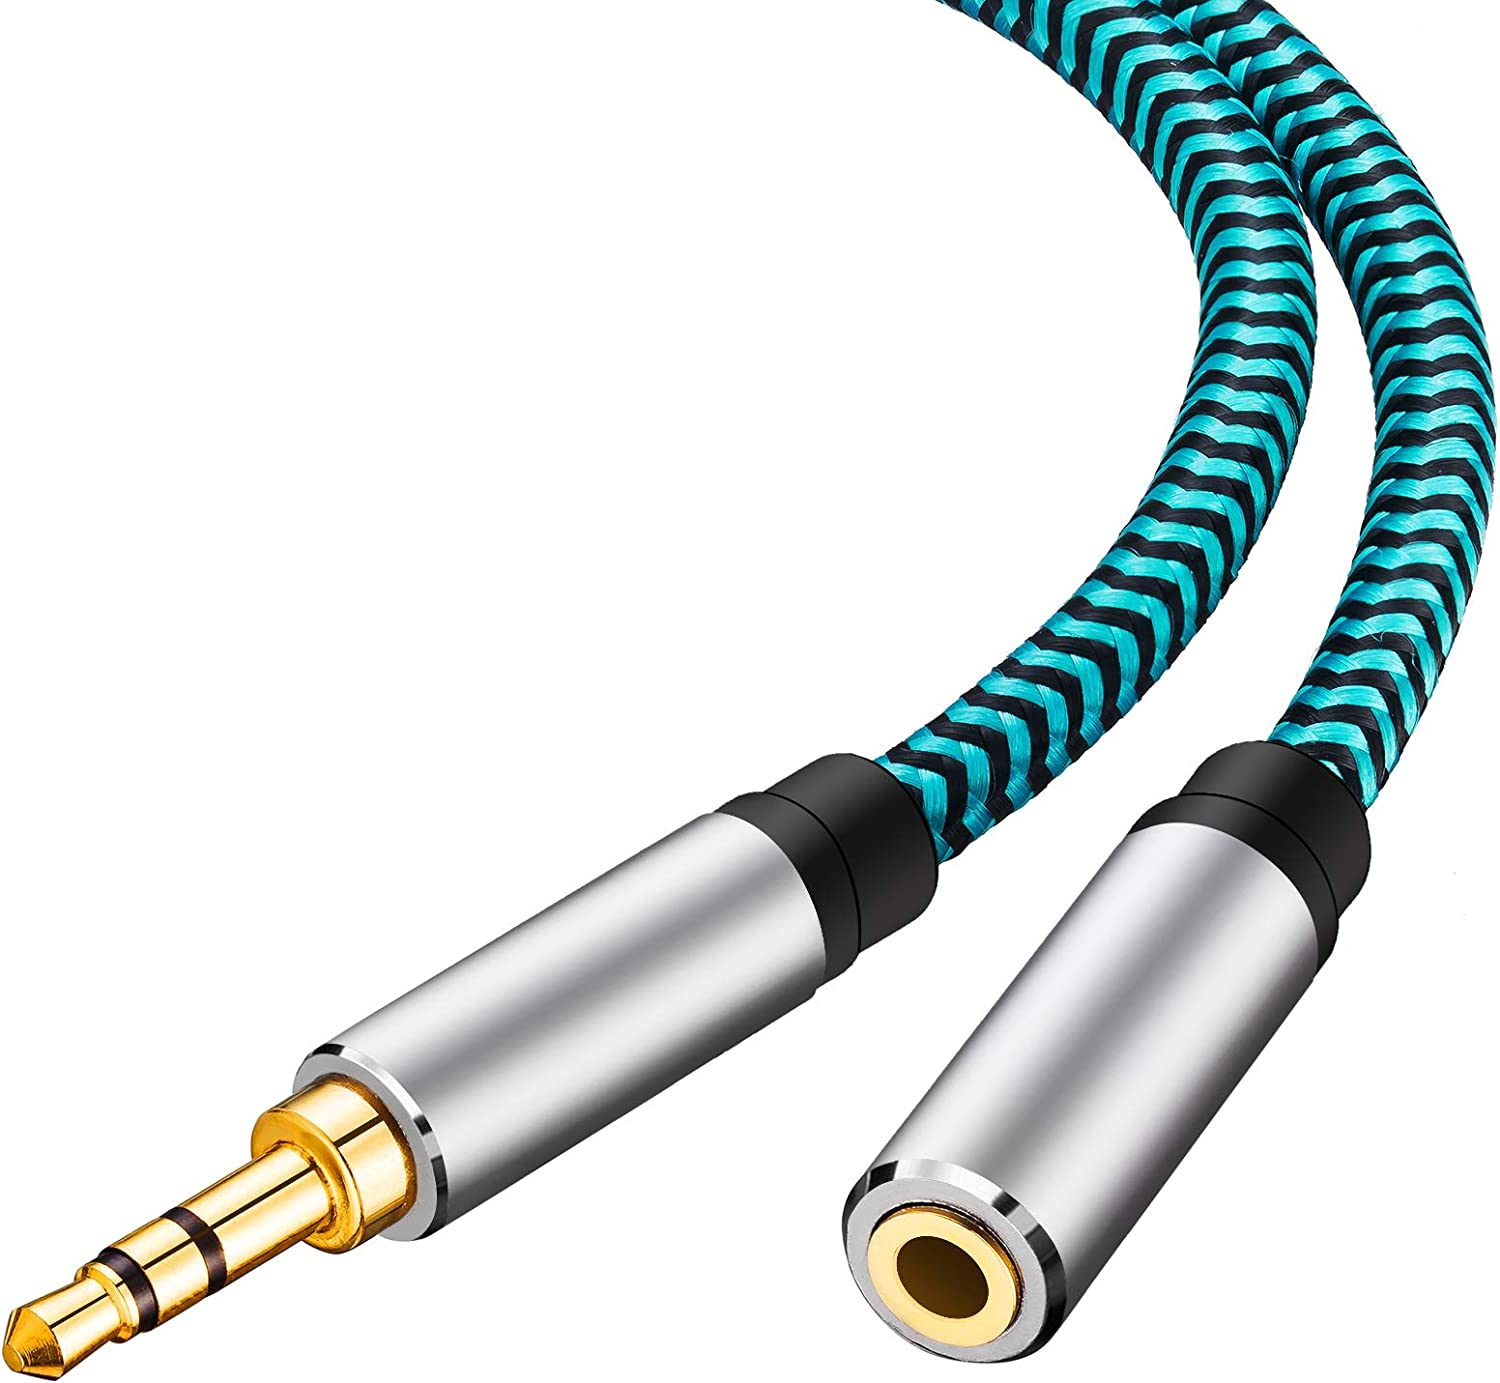 Aux Cable 50ft,Hftywy 3.5mm Male to Male Stereo Aux Cord 3.5mm Auxiliary Audio Cable Nylon Braided Male to Male Stereo Audio Cables Compatible Car//Home Stereos,Speaker,iPhone iPod iPad,Headphones